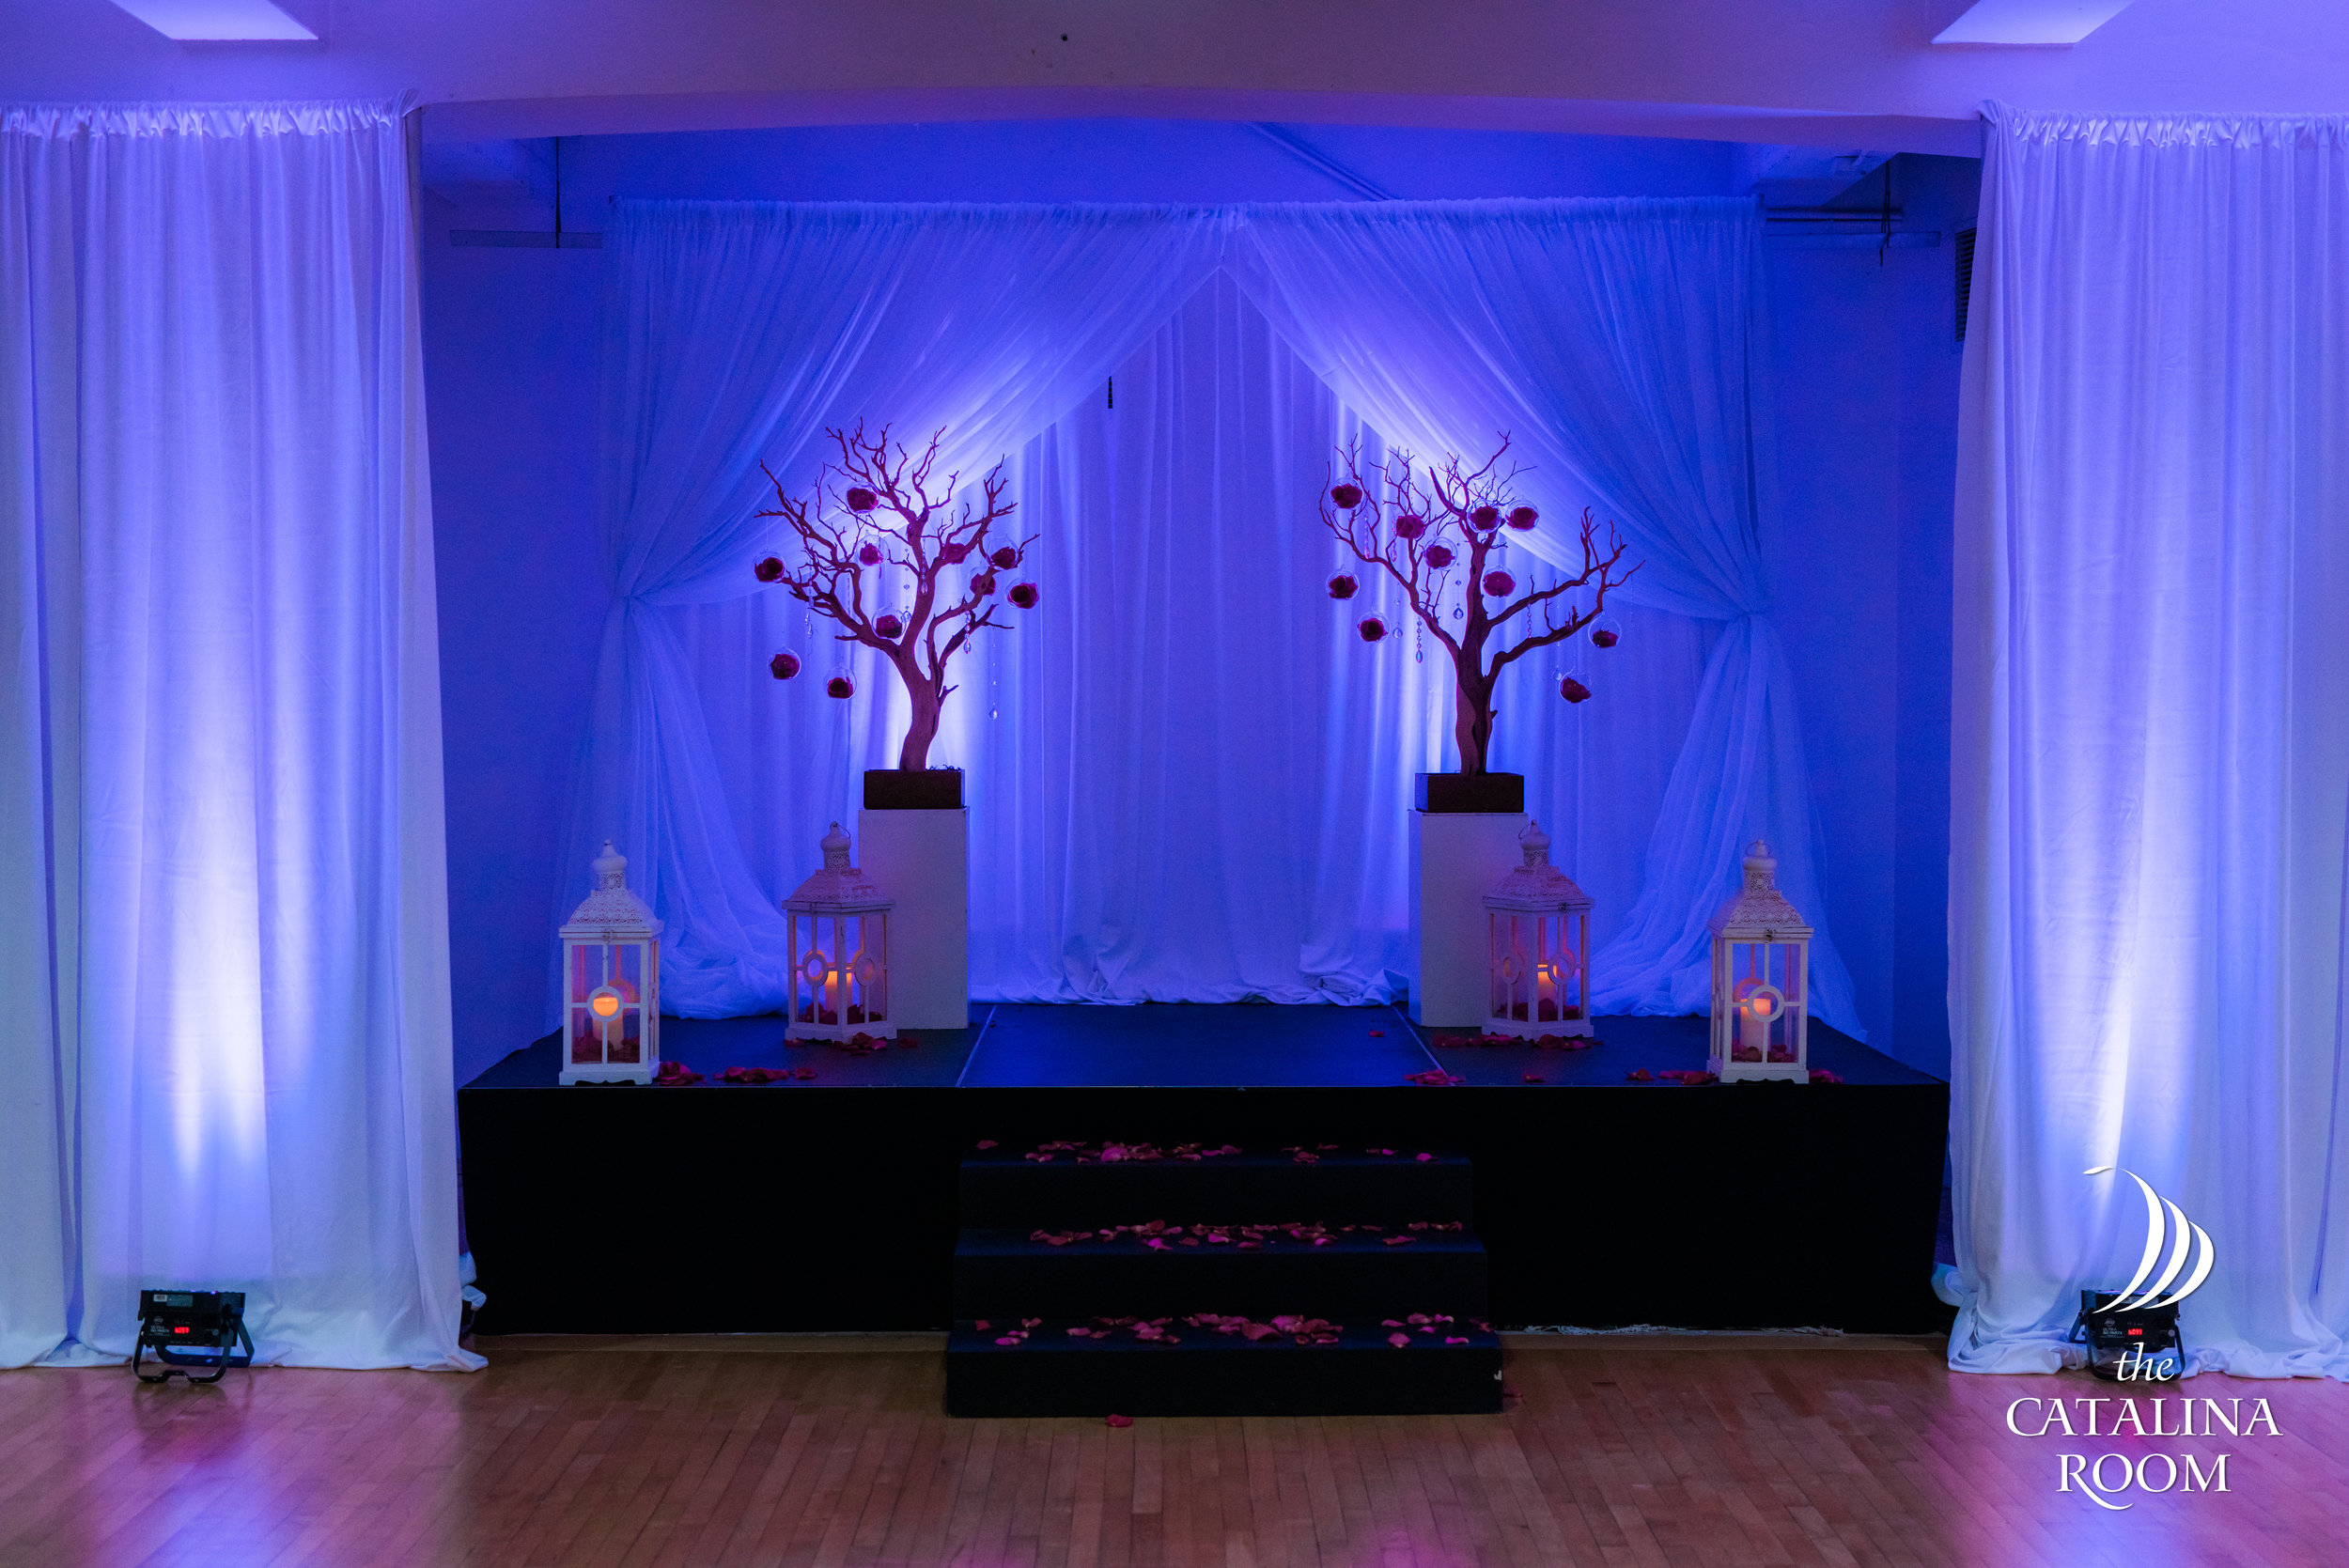 The Catalina Room Styled  Shoot - Hitched Photo (88 of 108).jpg